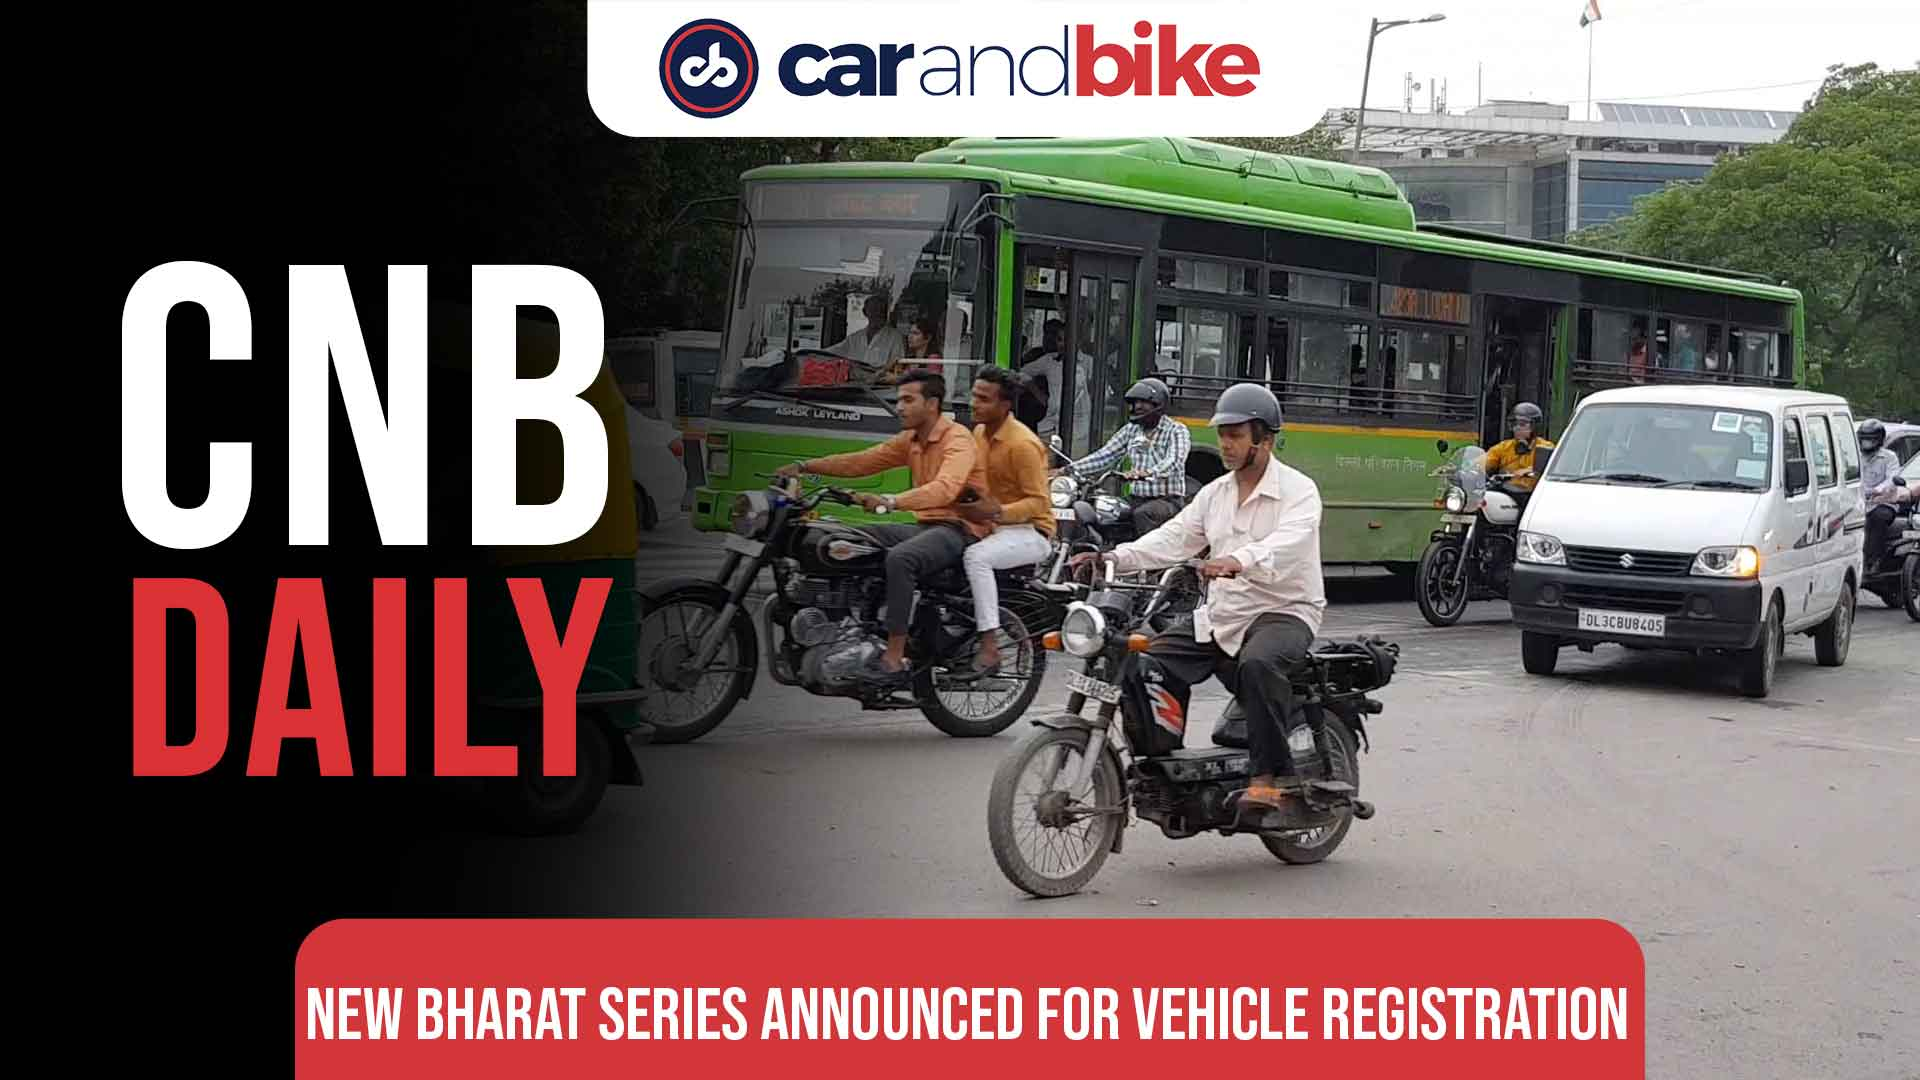 New Bharat series announced for vehicle registration